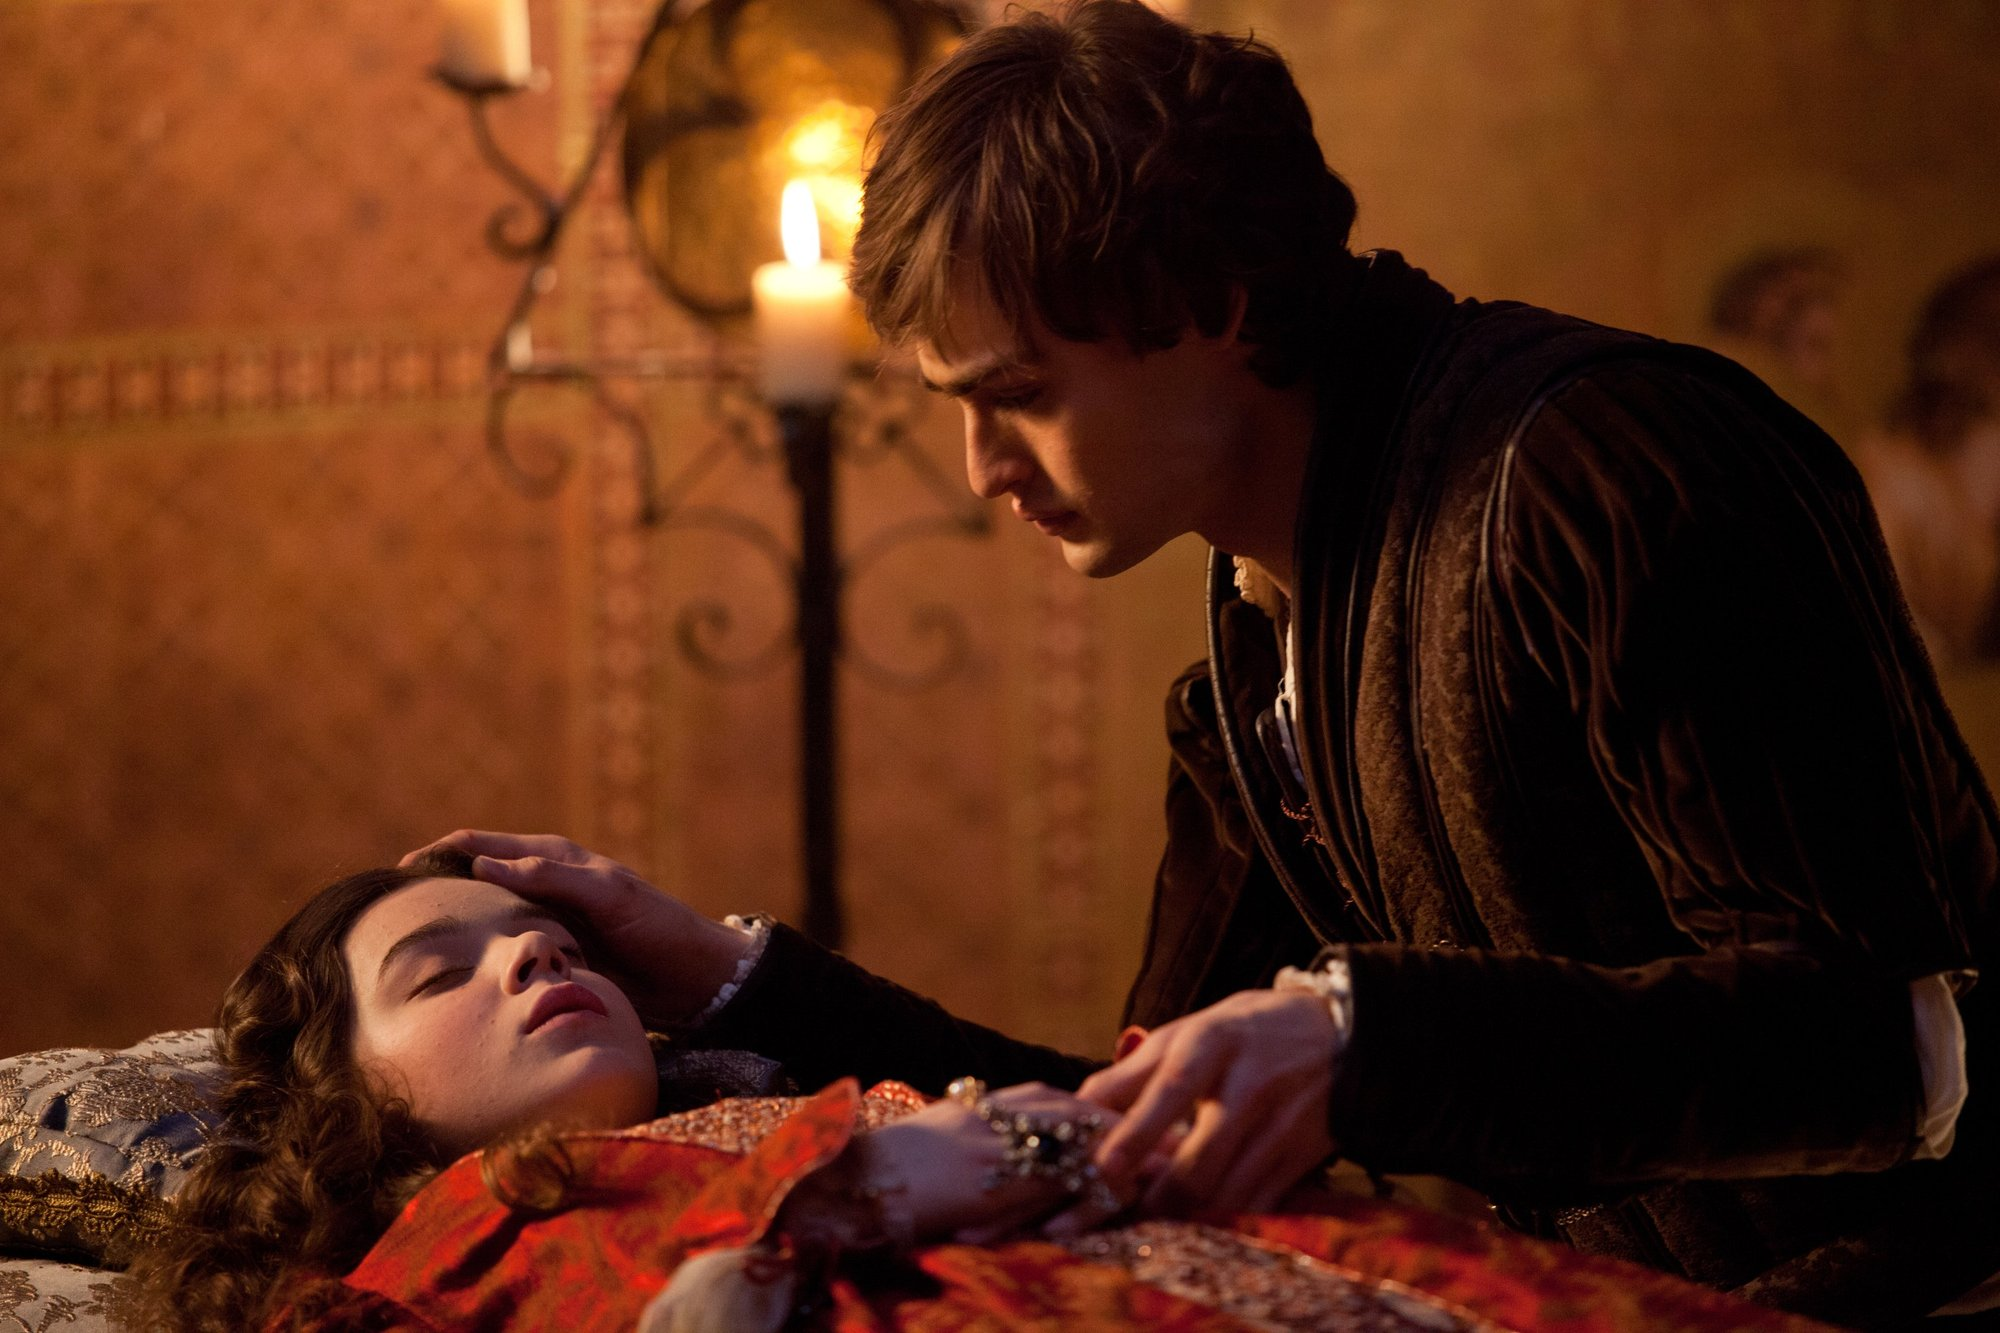 romeo and juliet movie vs book essays The romeo & juliet movie and play the following essay will explain some similarities and differences between the 1968 movie rendition of romeo & juliet and the play written by william shakespeare.